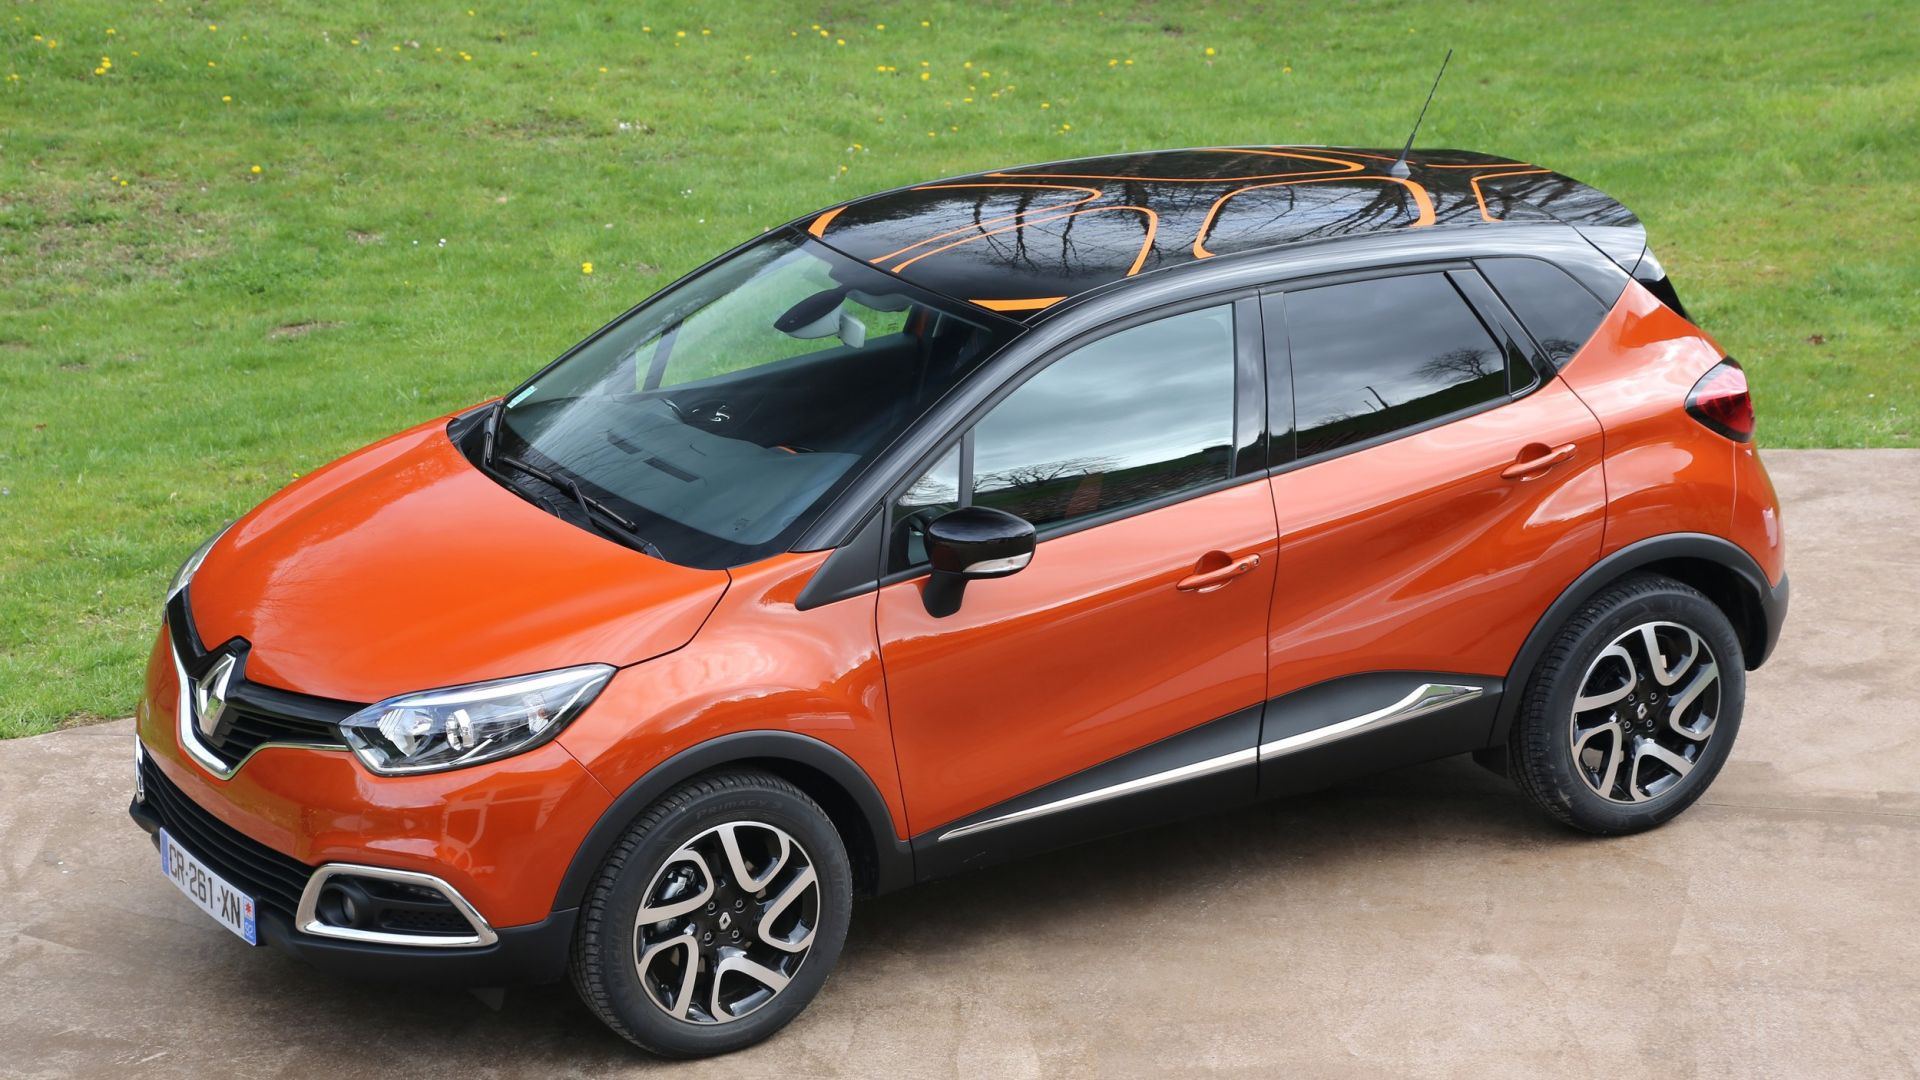 test drive renault captur tce 120 cv edc motorbox. Black Bedroom Furniture Sets. Home Design Ideas